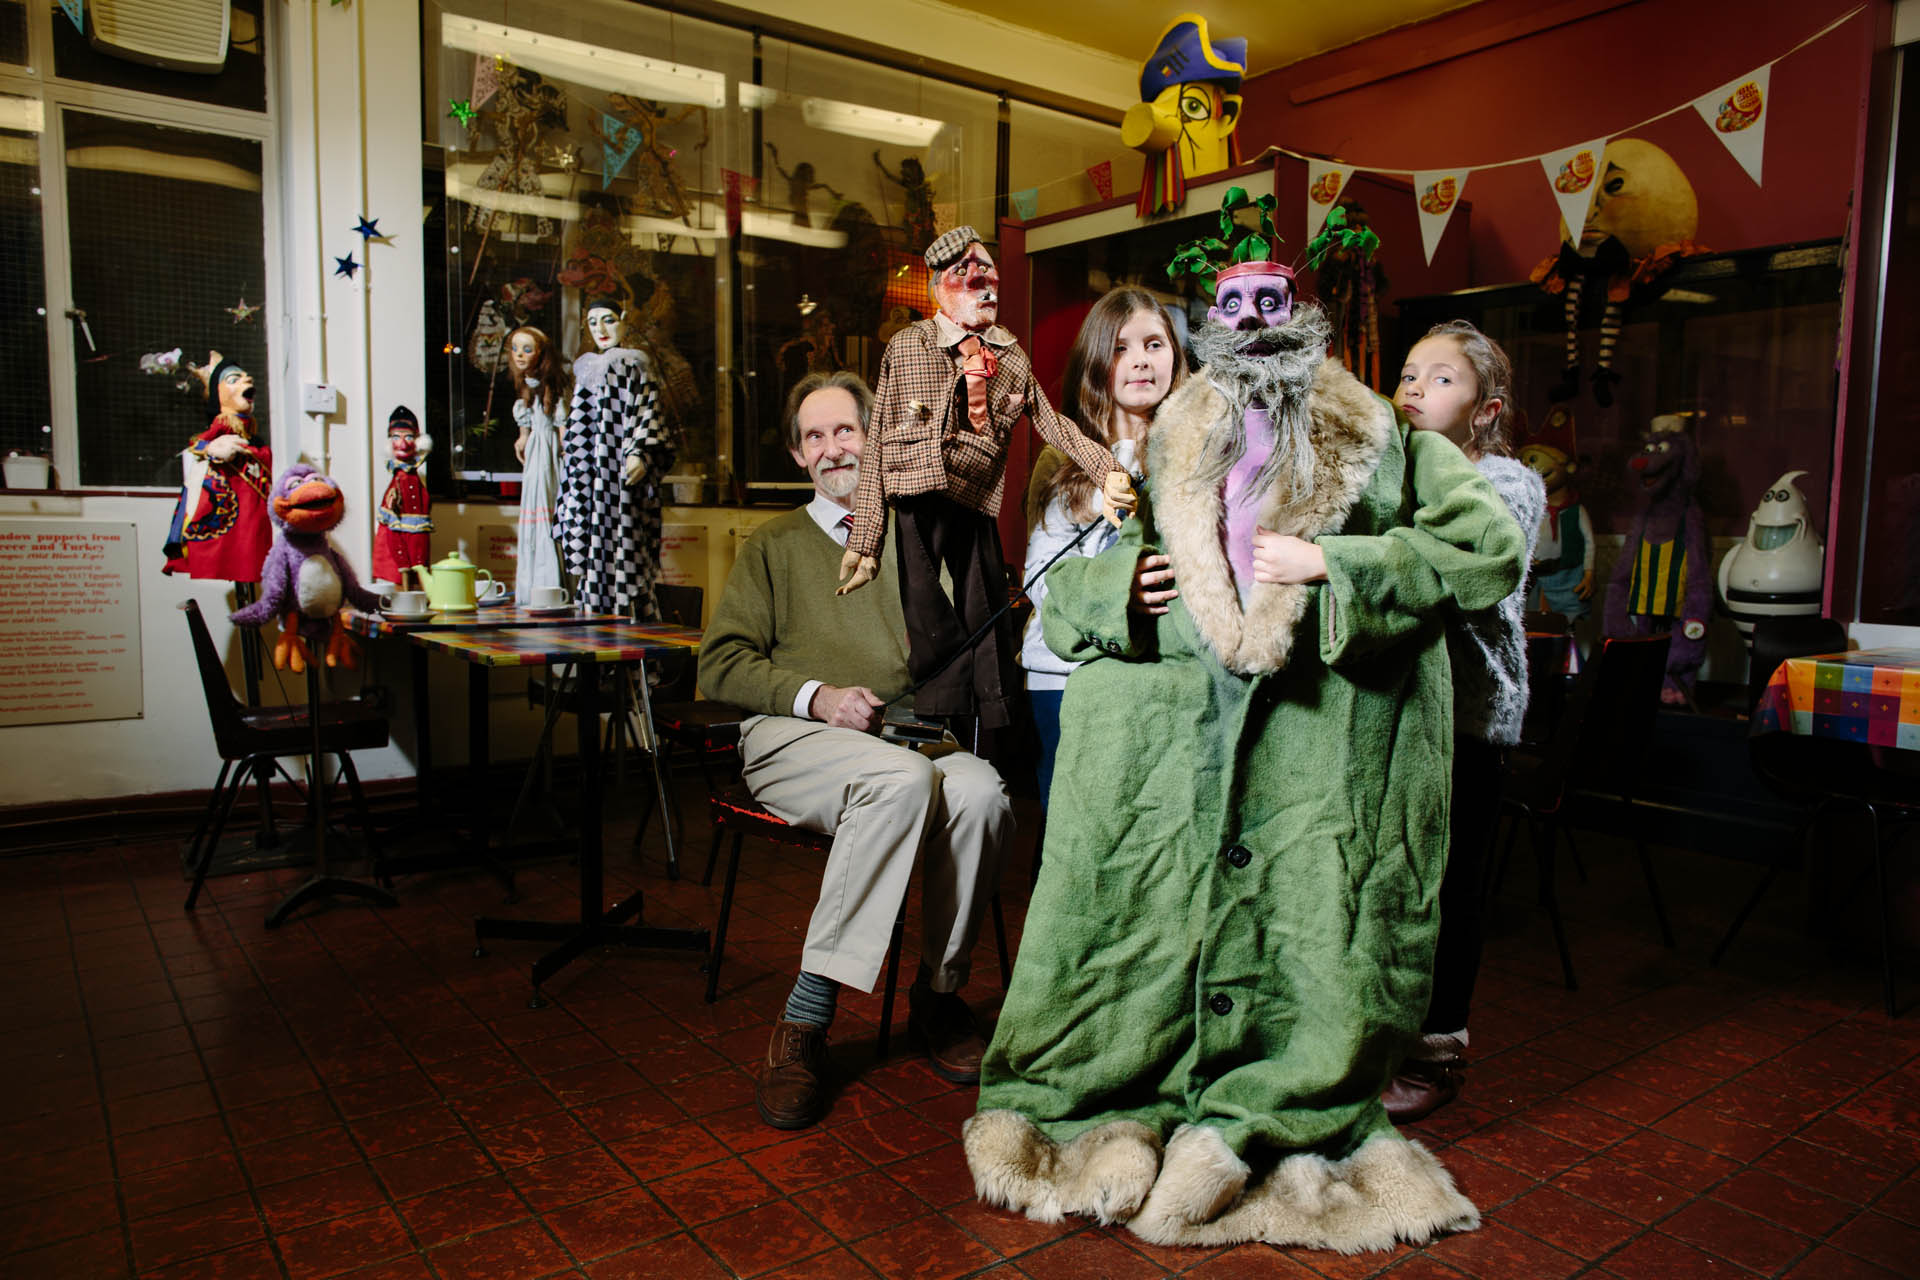 Portrait of Puppets at the Glasgow Puppet Centre, part of a series of portraits of different communities commissioned by the National Theatre of Scotland.